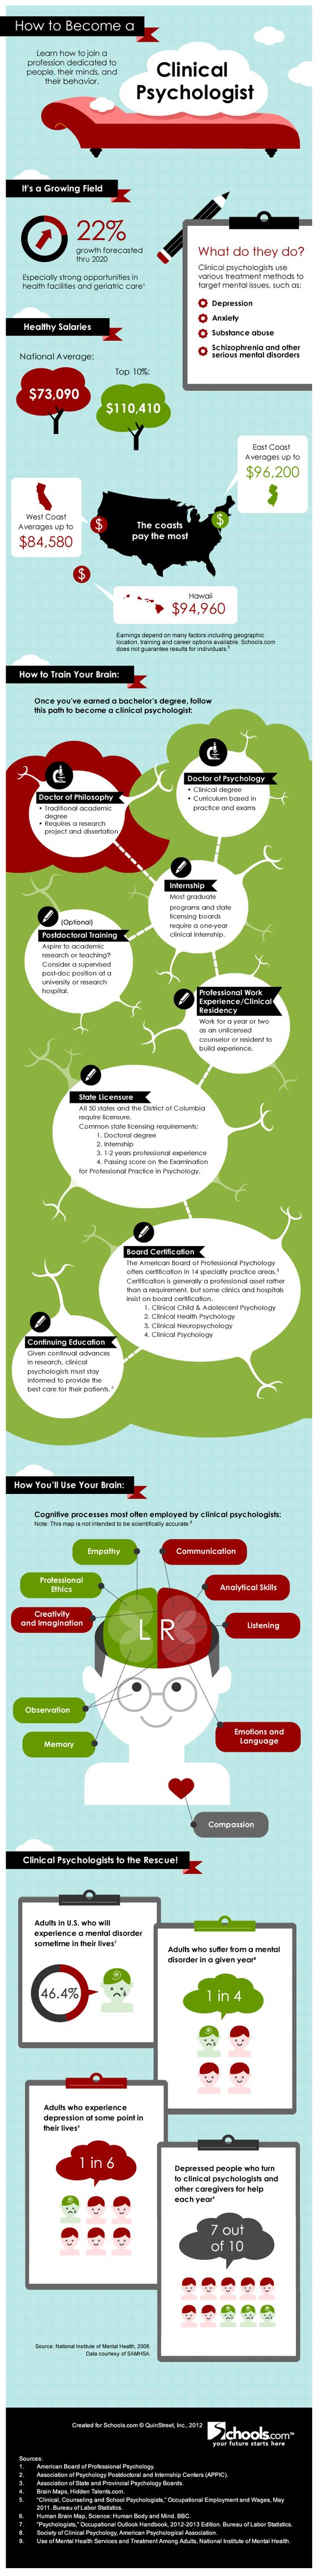 How to become a #Clinical #Psychologist